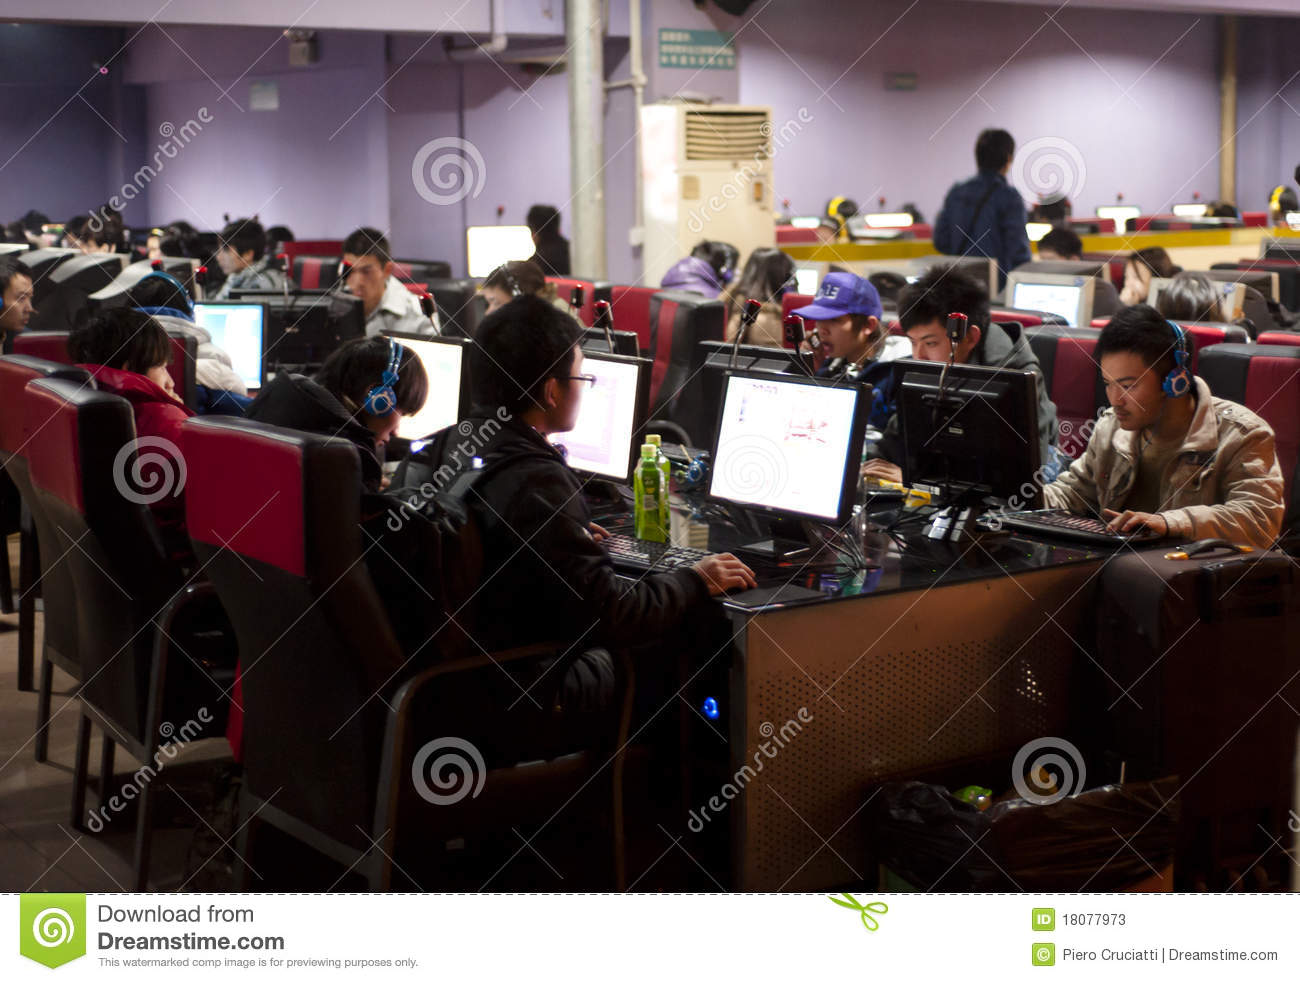 A crowded internet cafe in China